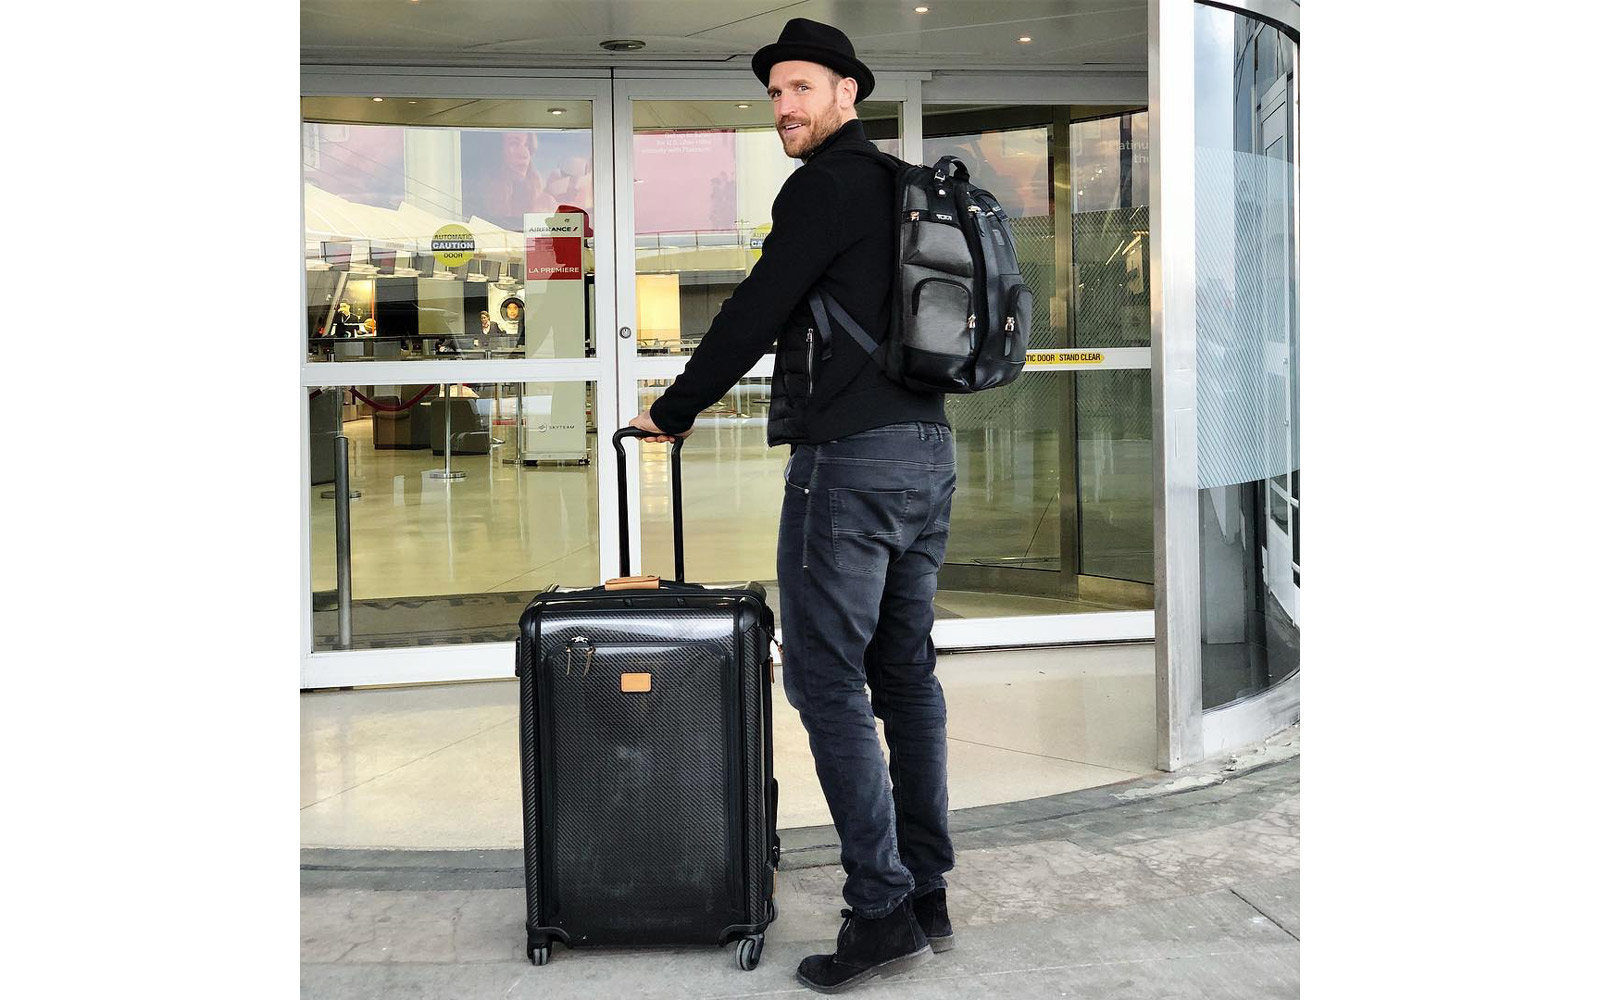 Brooks Laich showing off his Tumi luggage set